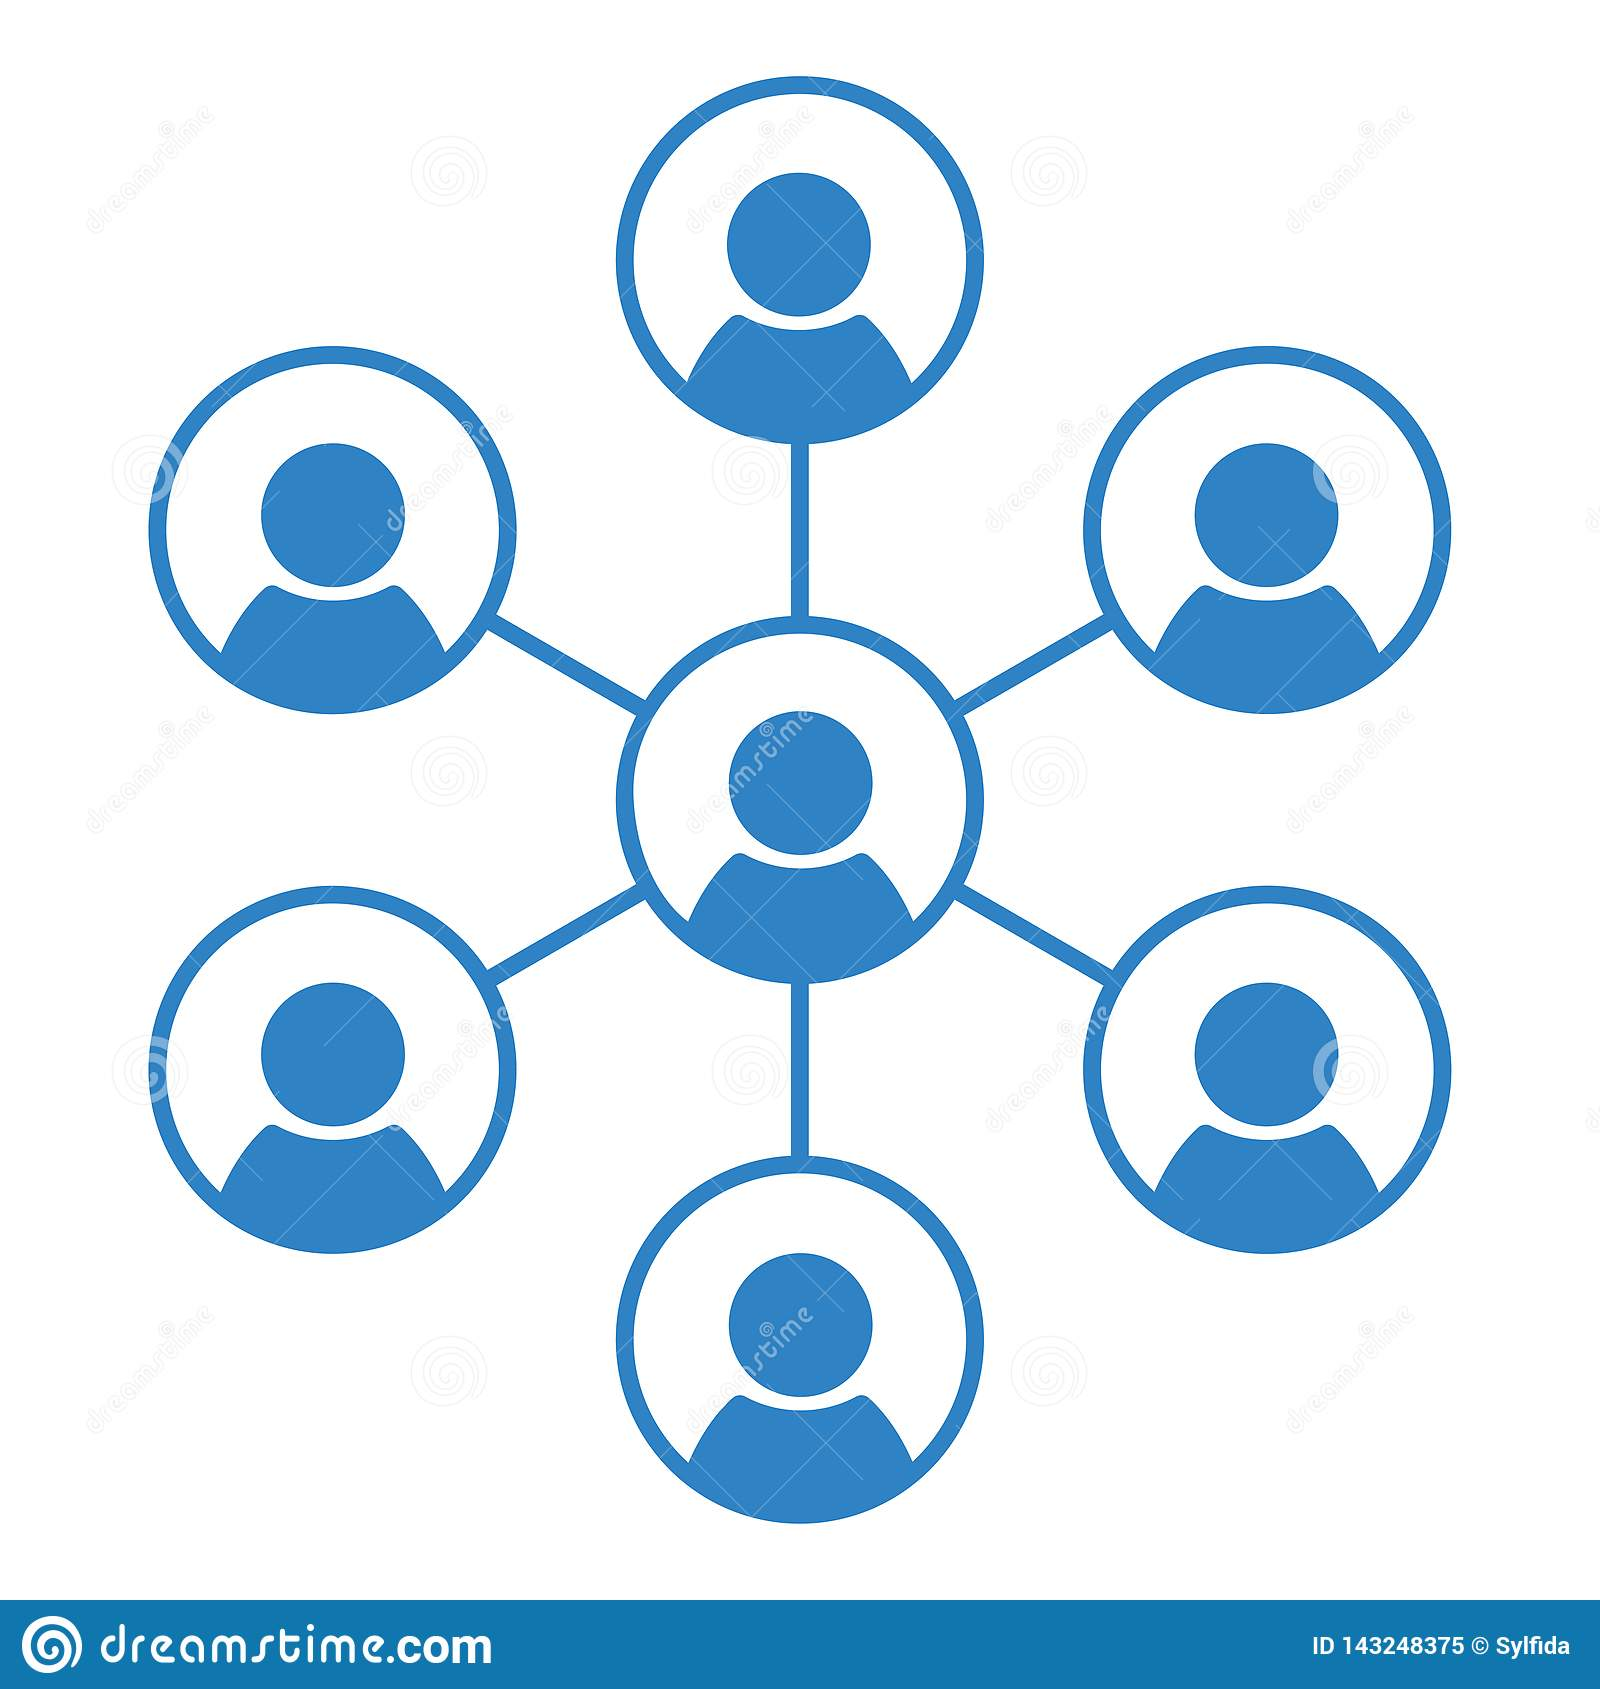 Icon people network The ICON